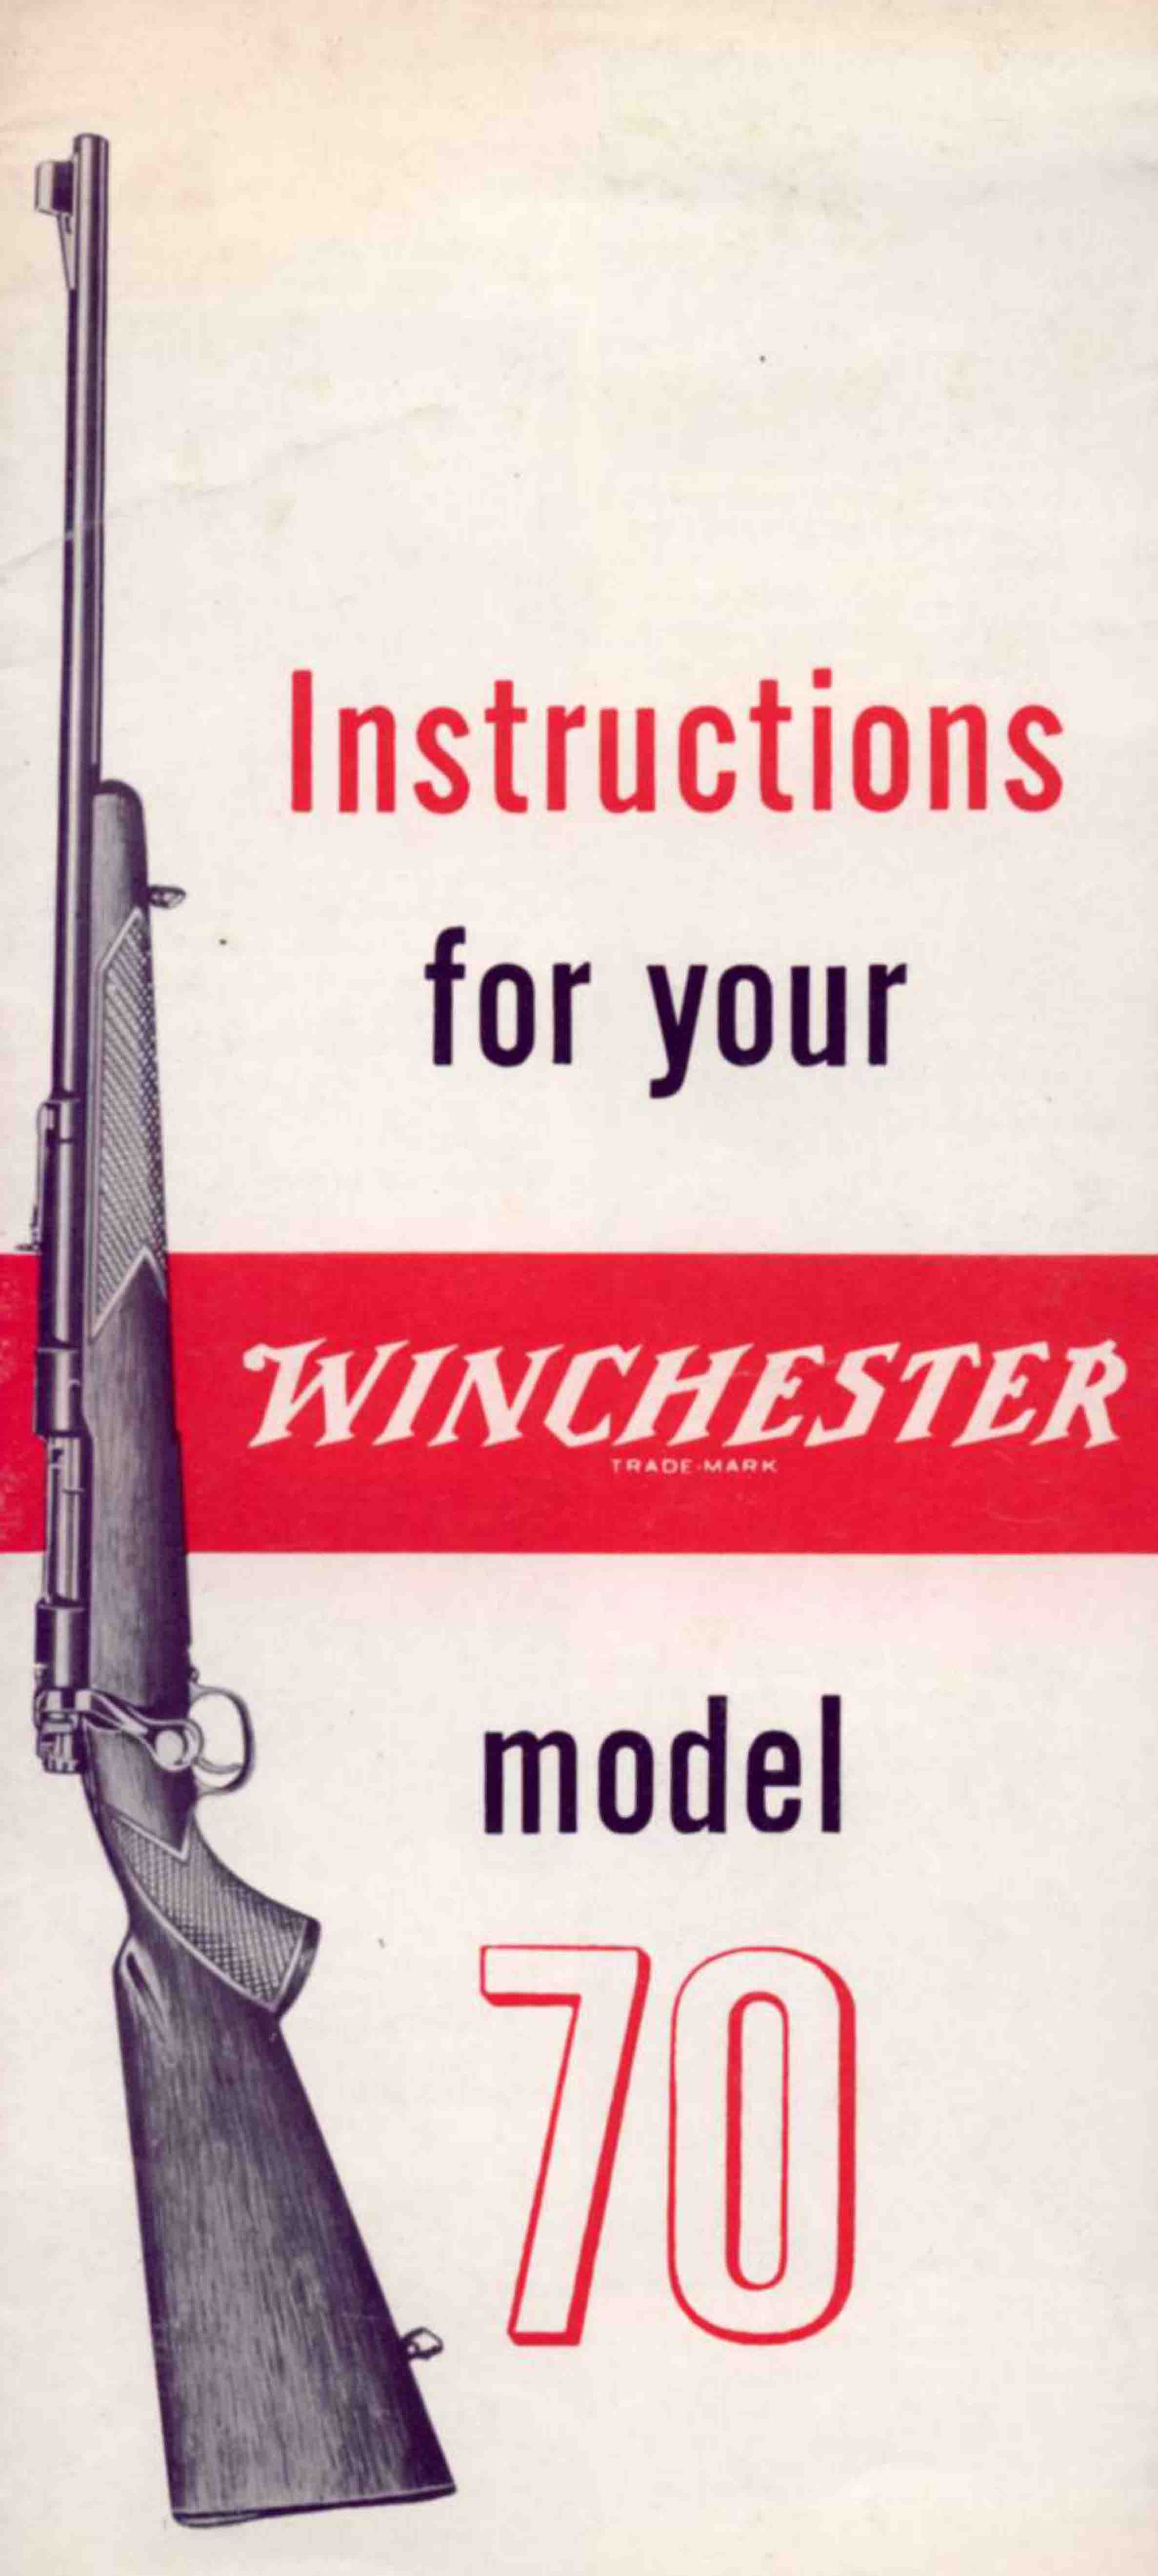 Winchester Model 70 Manual - PDF DOWNLOAD VERSION